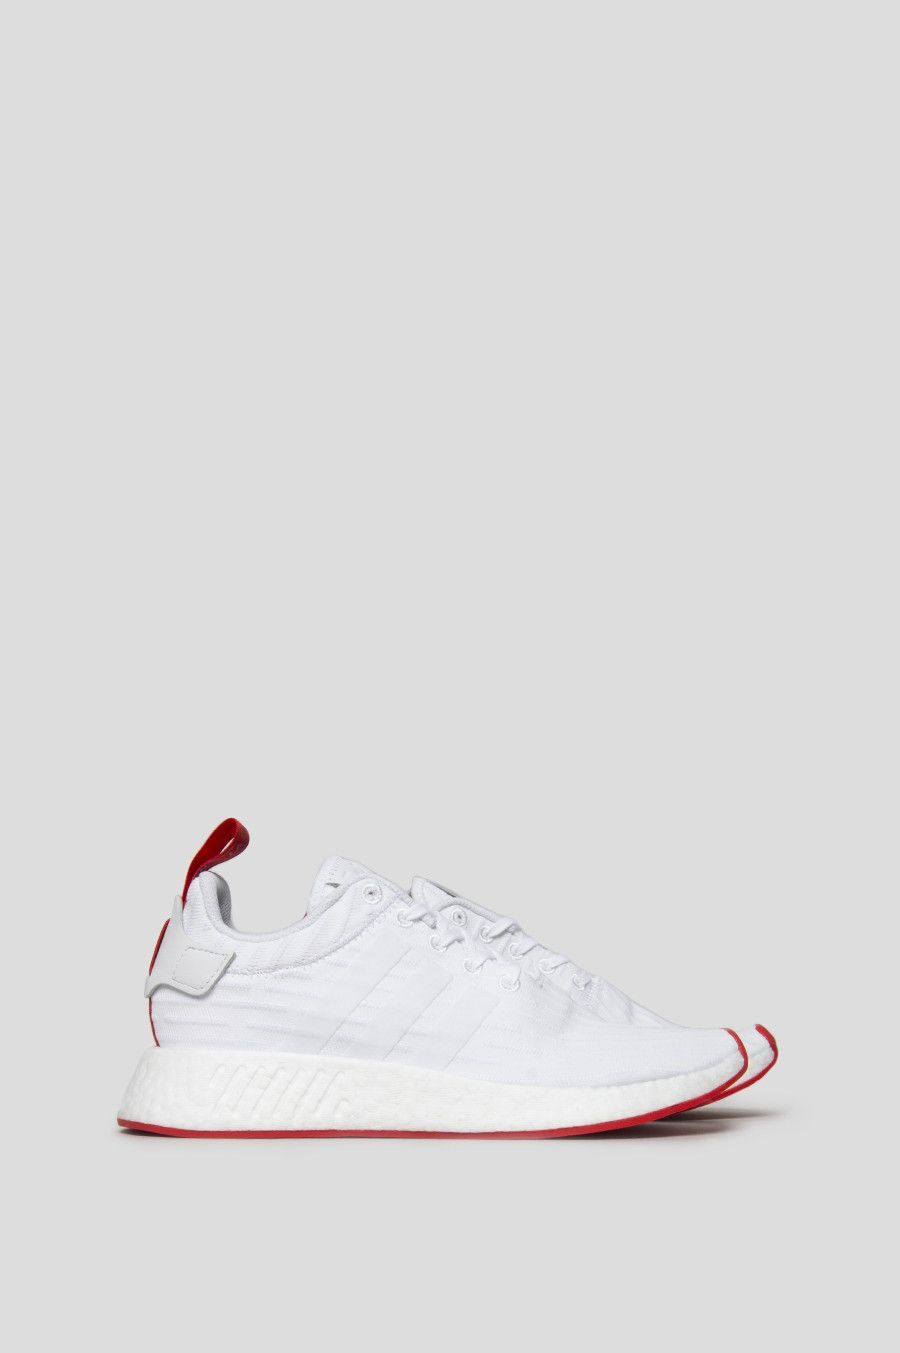 adidas nmd r2 red adidas stan smith all white highsnobiety